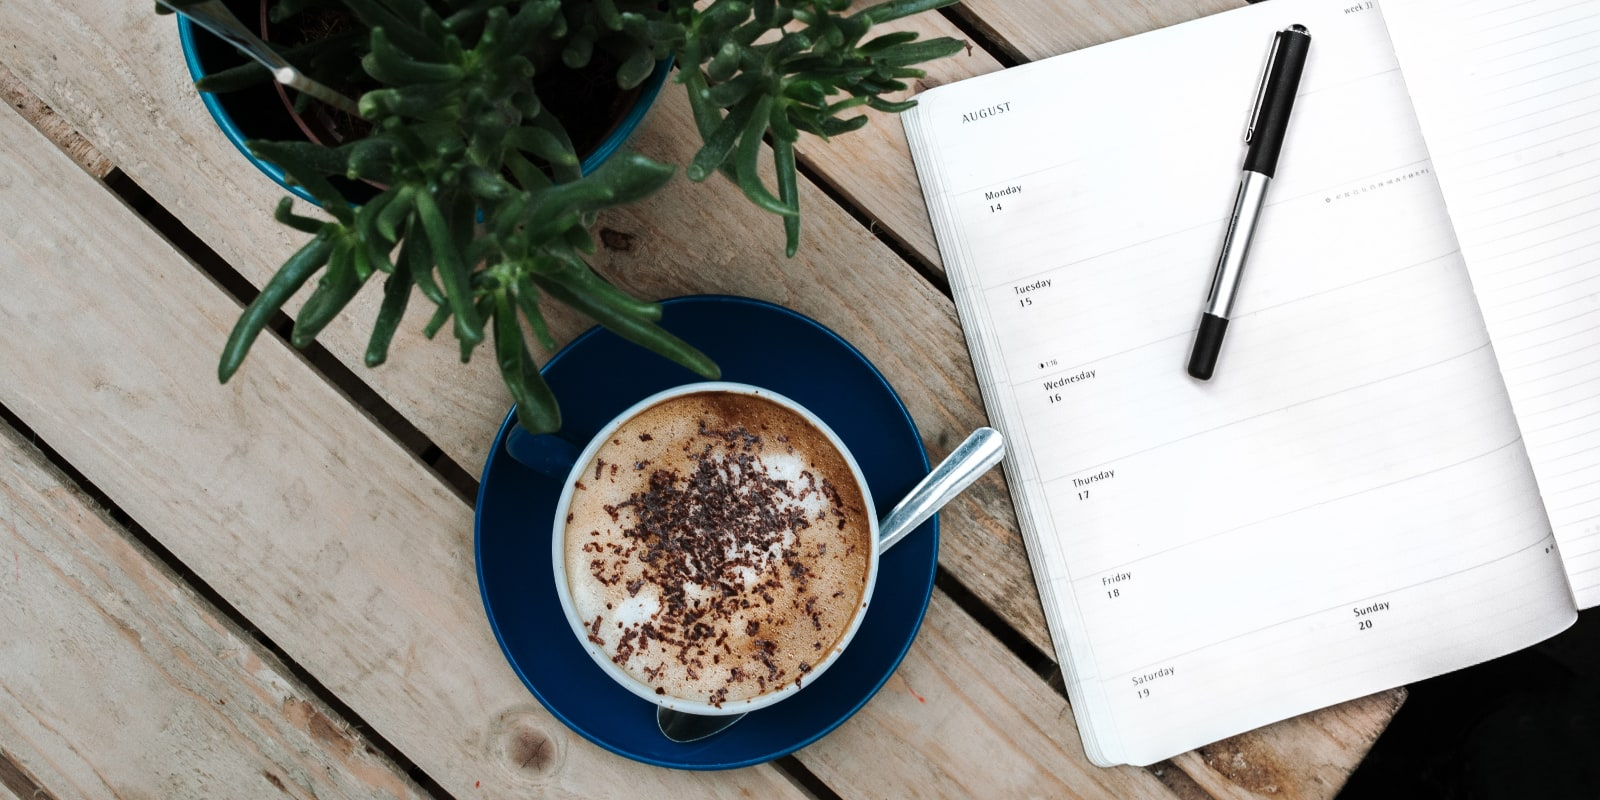 Cup of coffee and a weekly planner